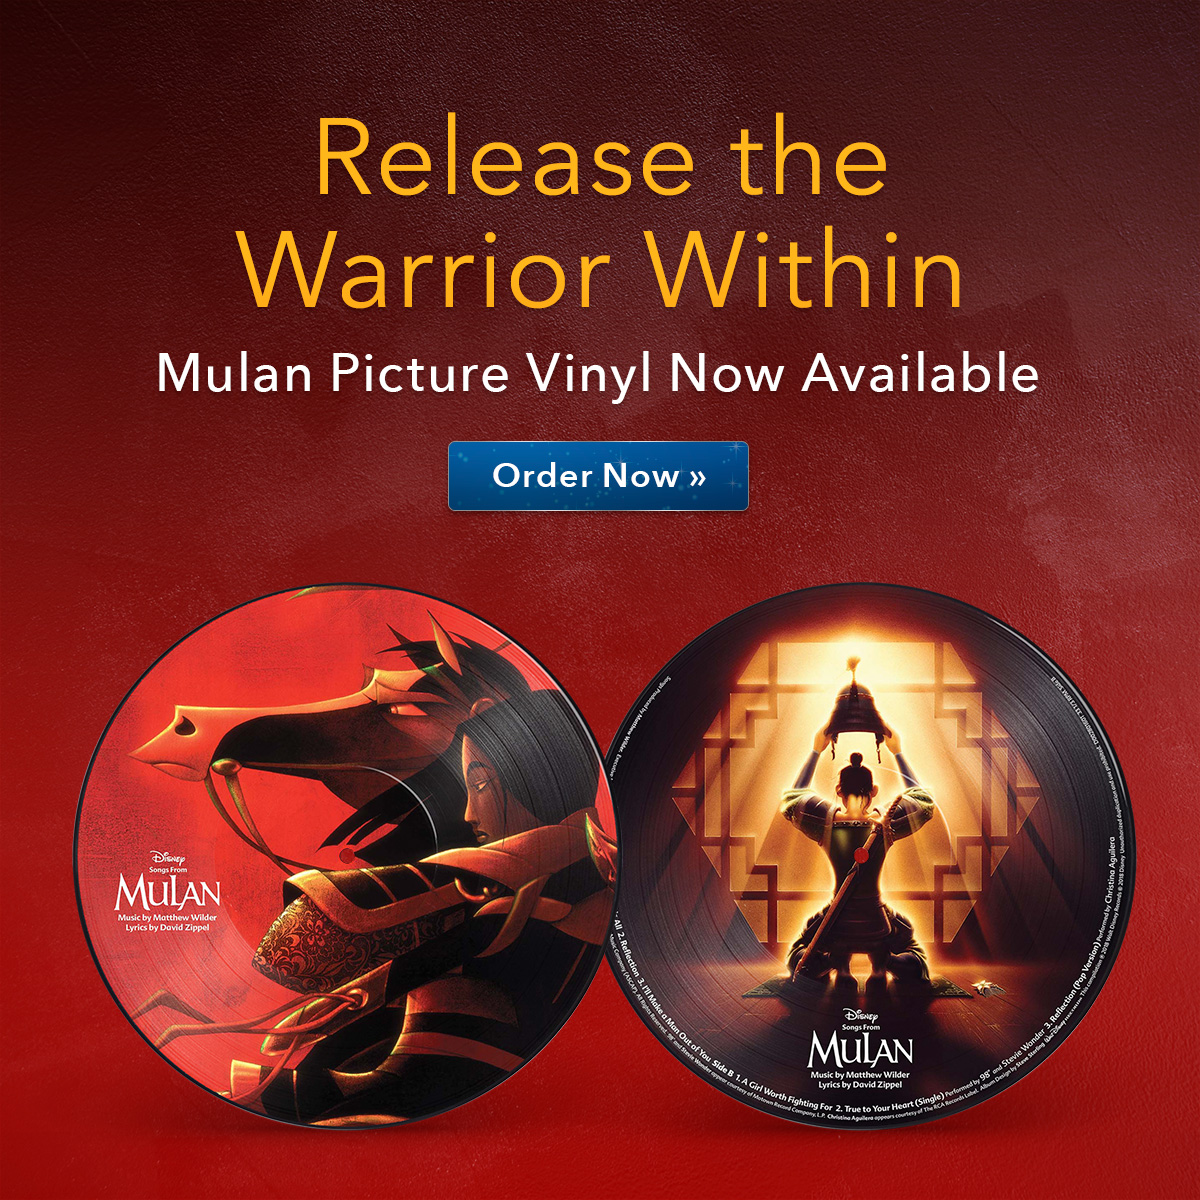 Mulan Pic Vinyl Now Available